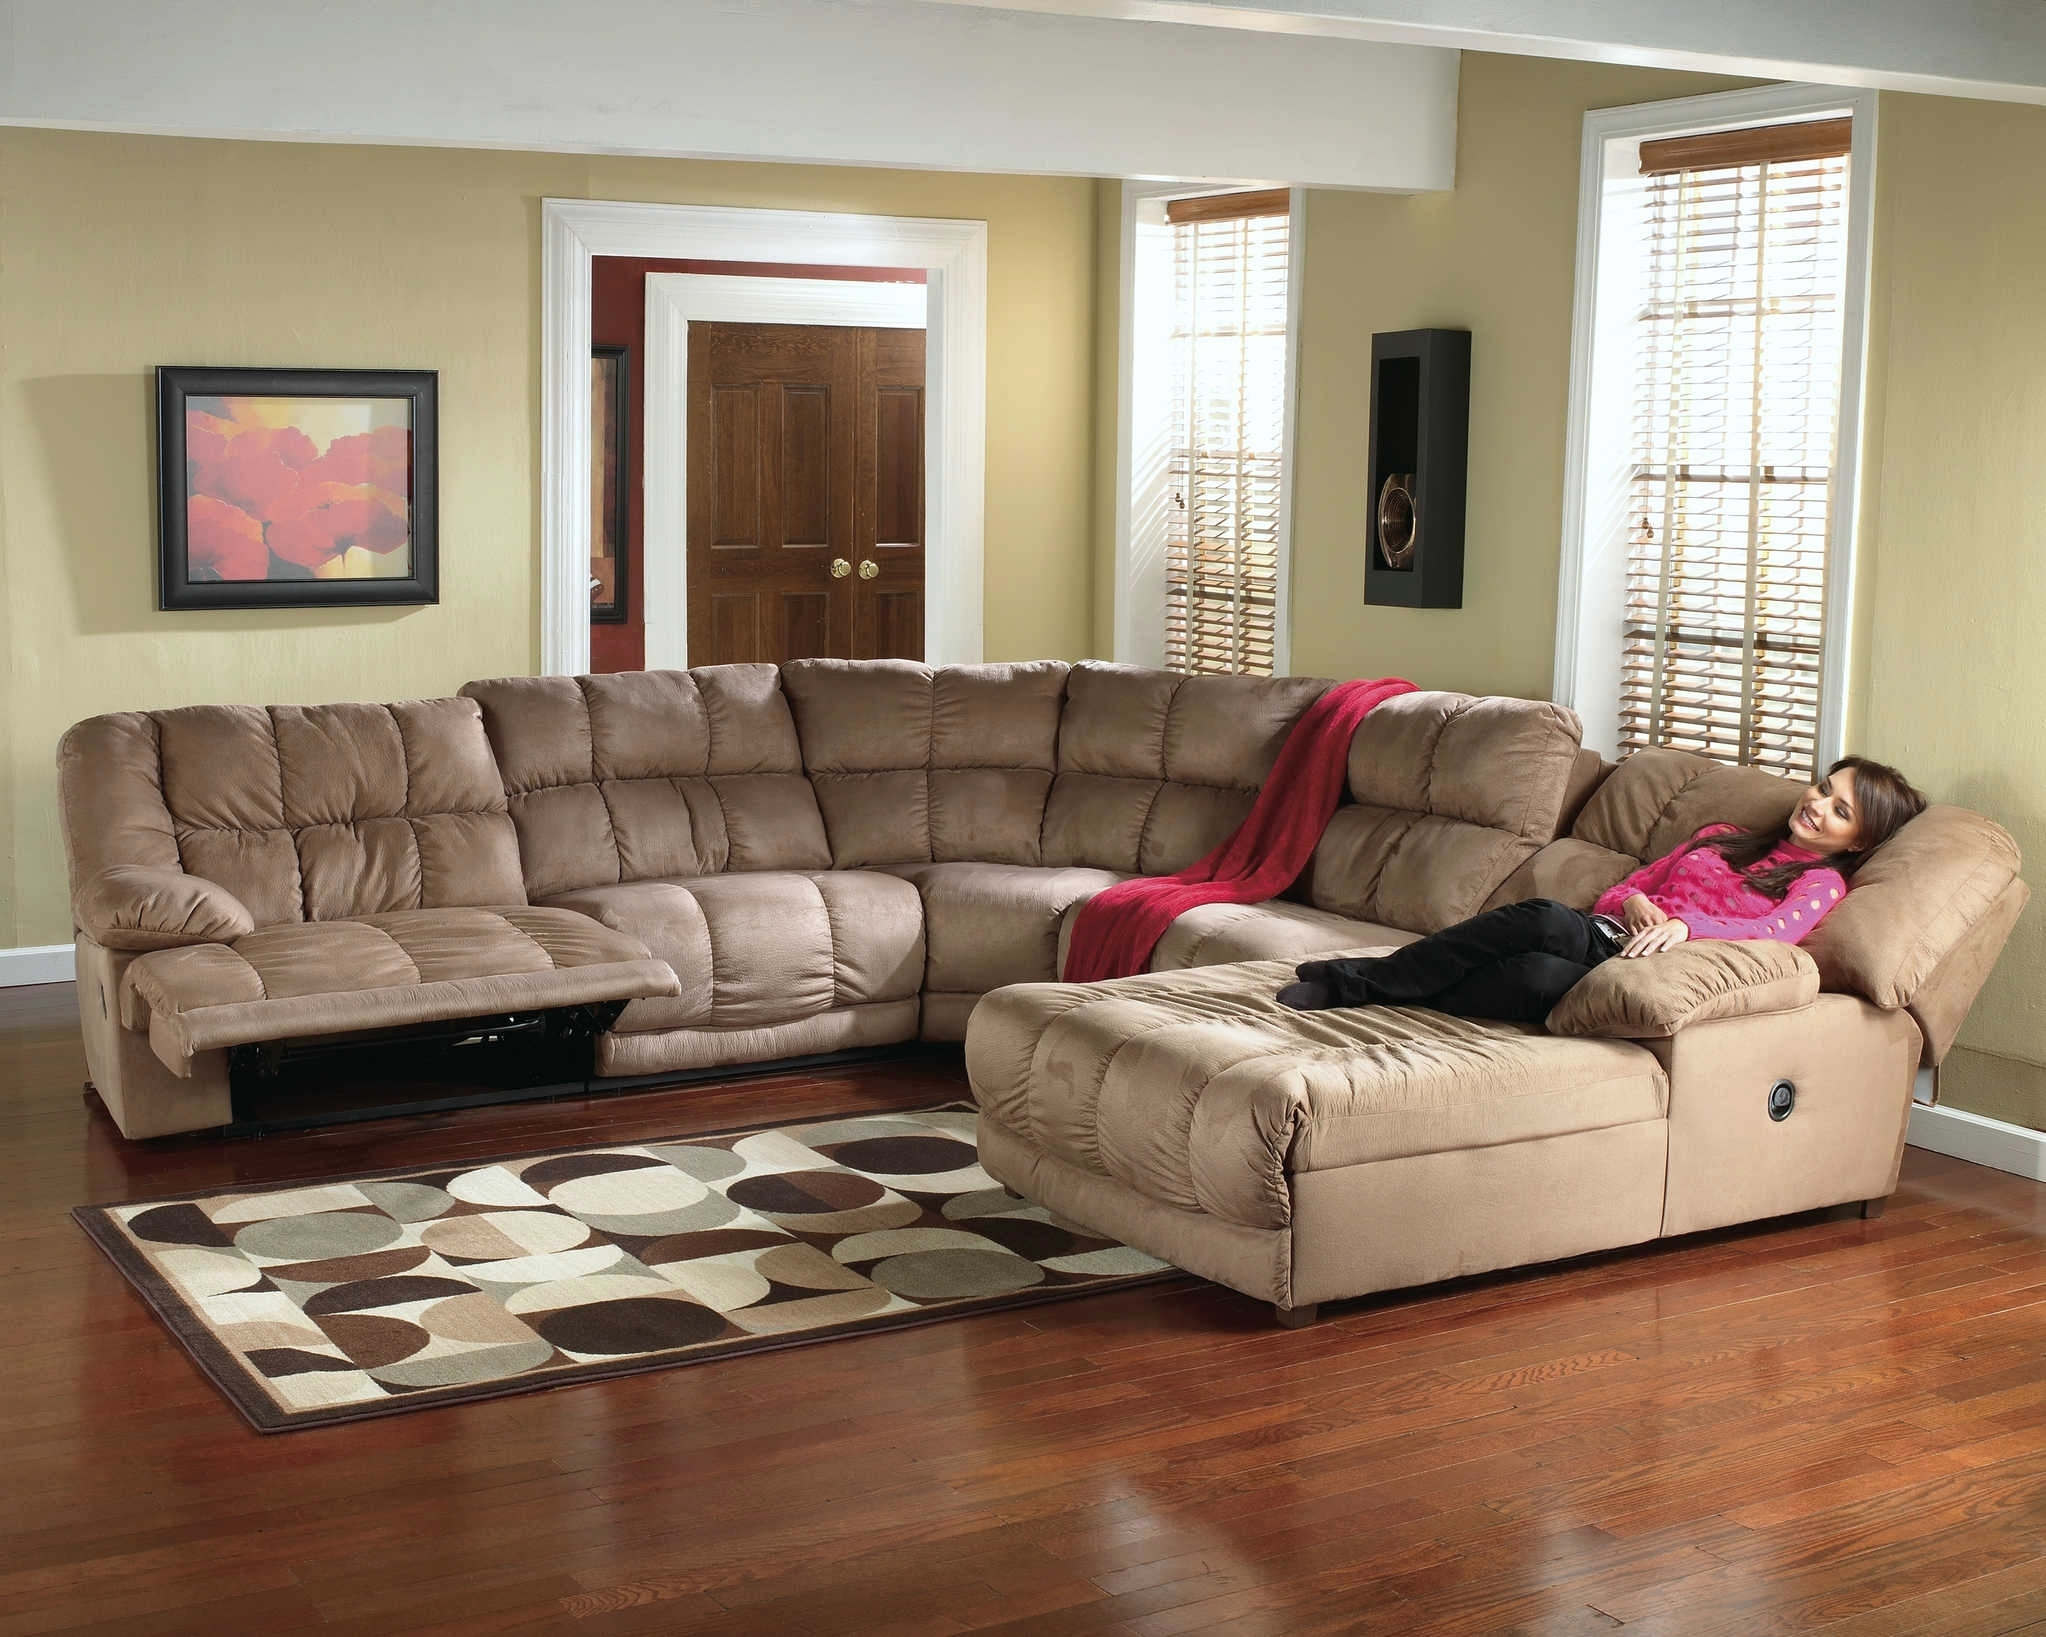 Lovely Apartment Size Reclining Sectional 2018 – Couches And Sofas Ideas Regarding Las Vegas Sectional Sofas (View 9 of 10)